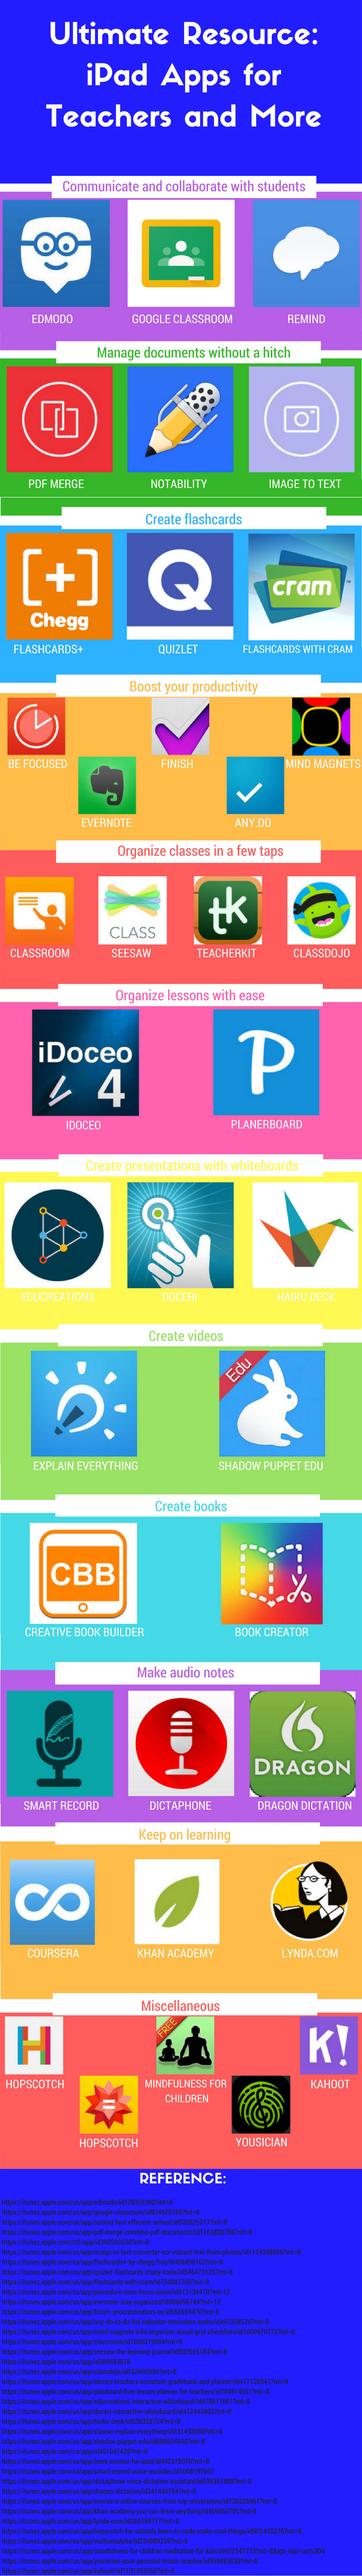 iPad Apps for Teachers and More